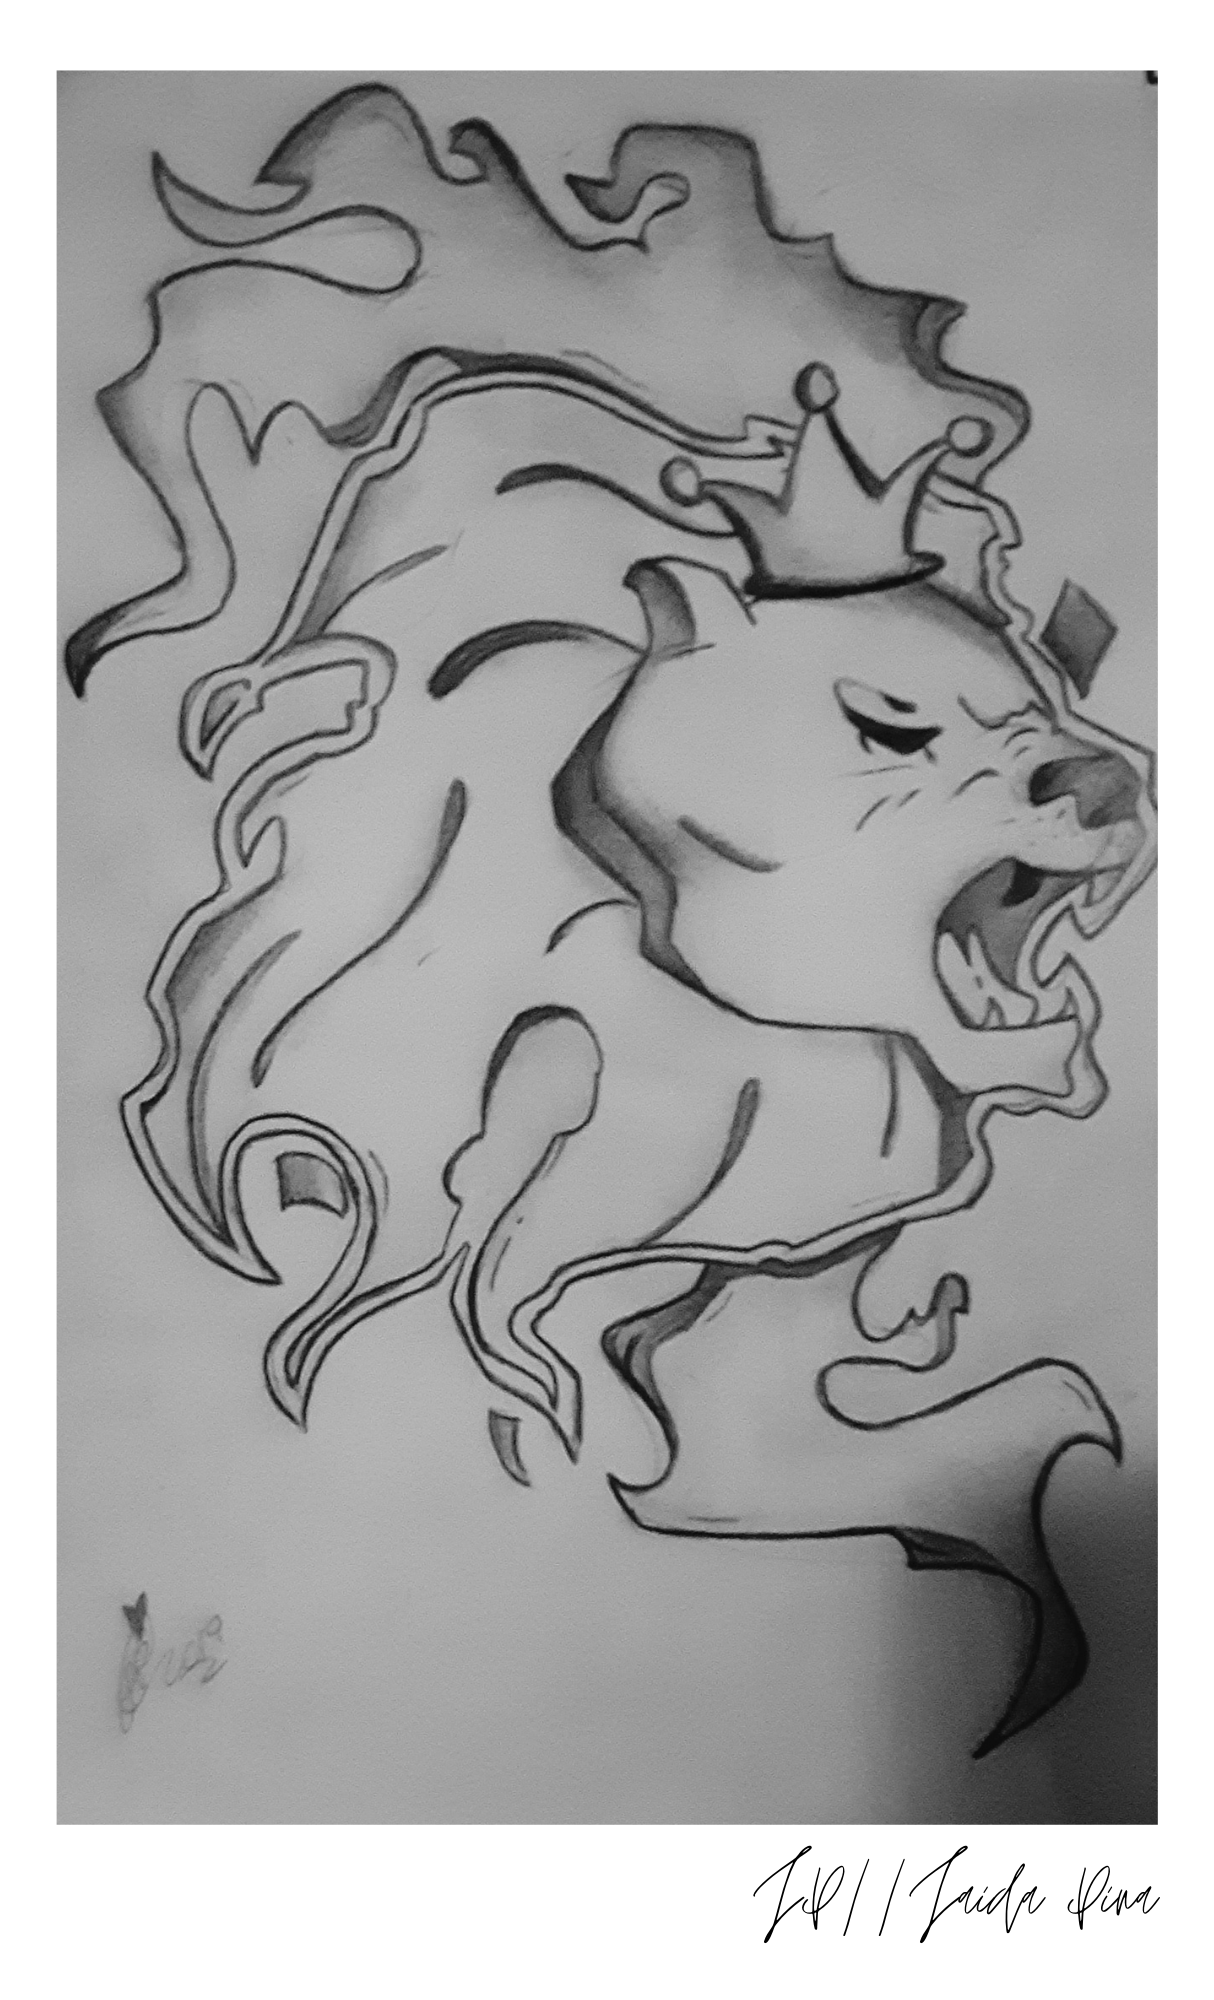 Digital drawing of a lion with a crown. Drawing and photo courtesy of the author.